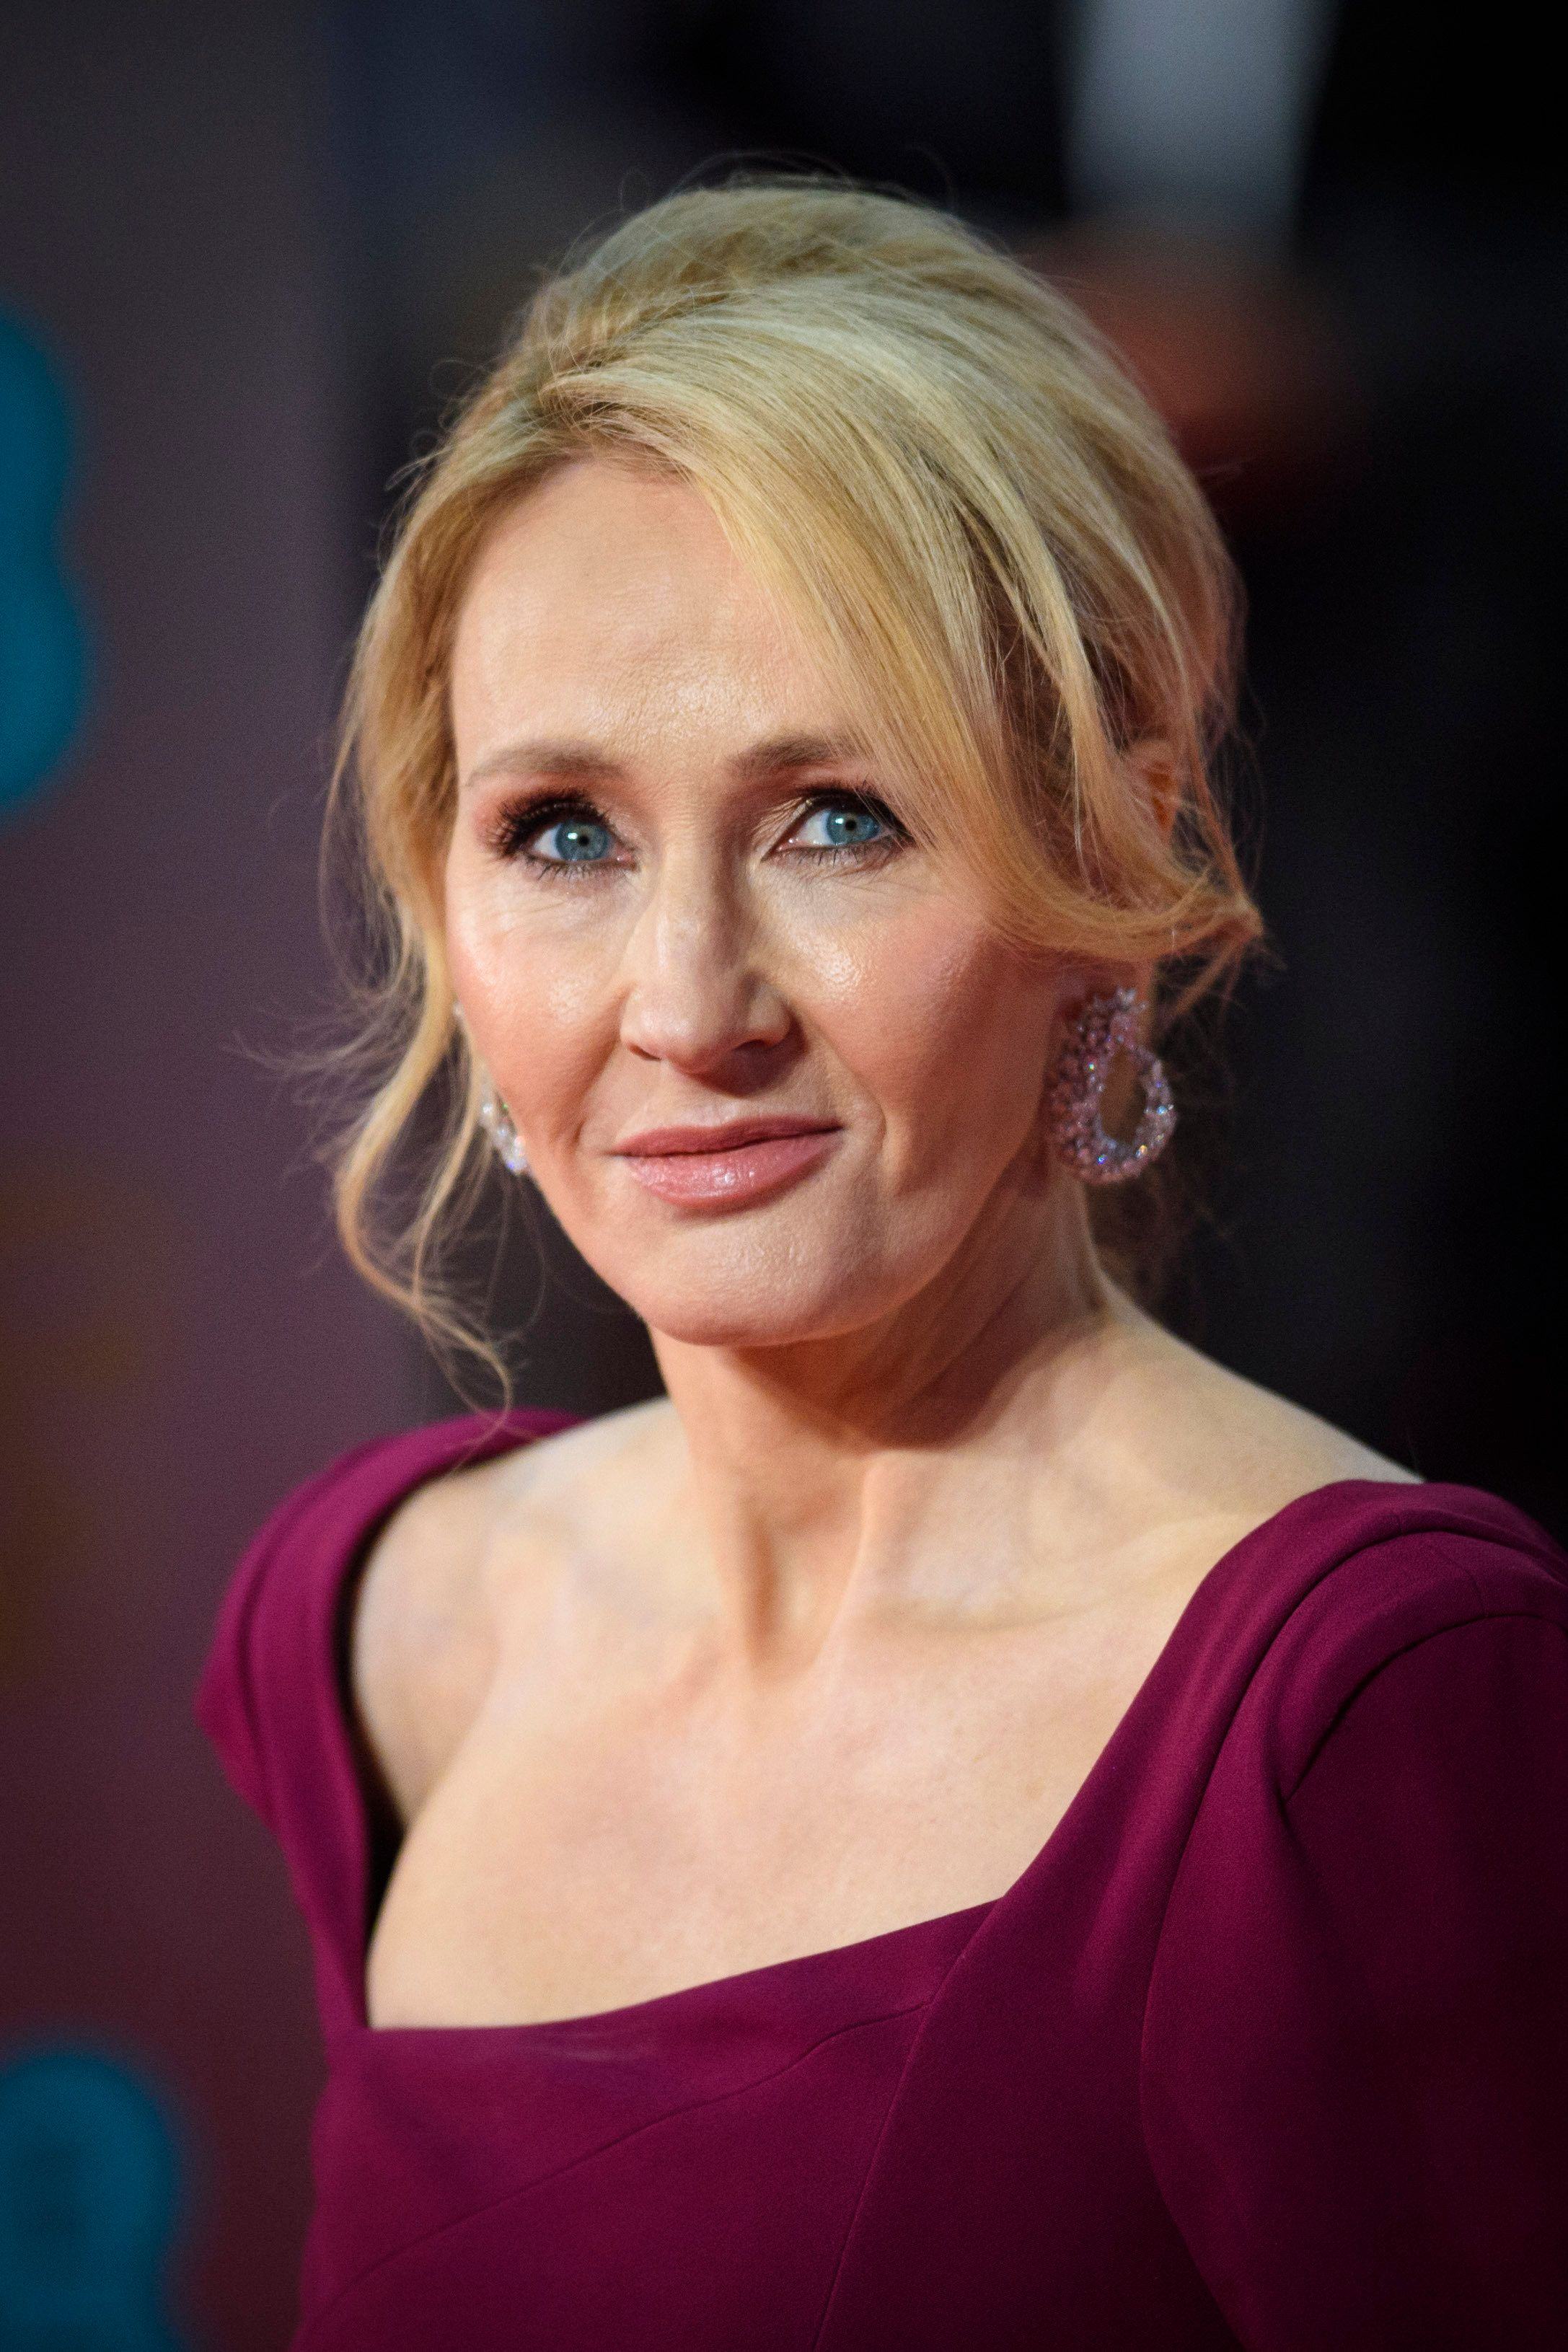 J.K. Rowling Is The Richest Author In The World,